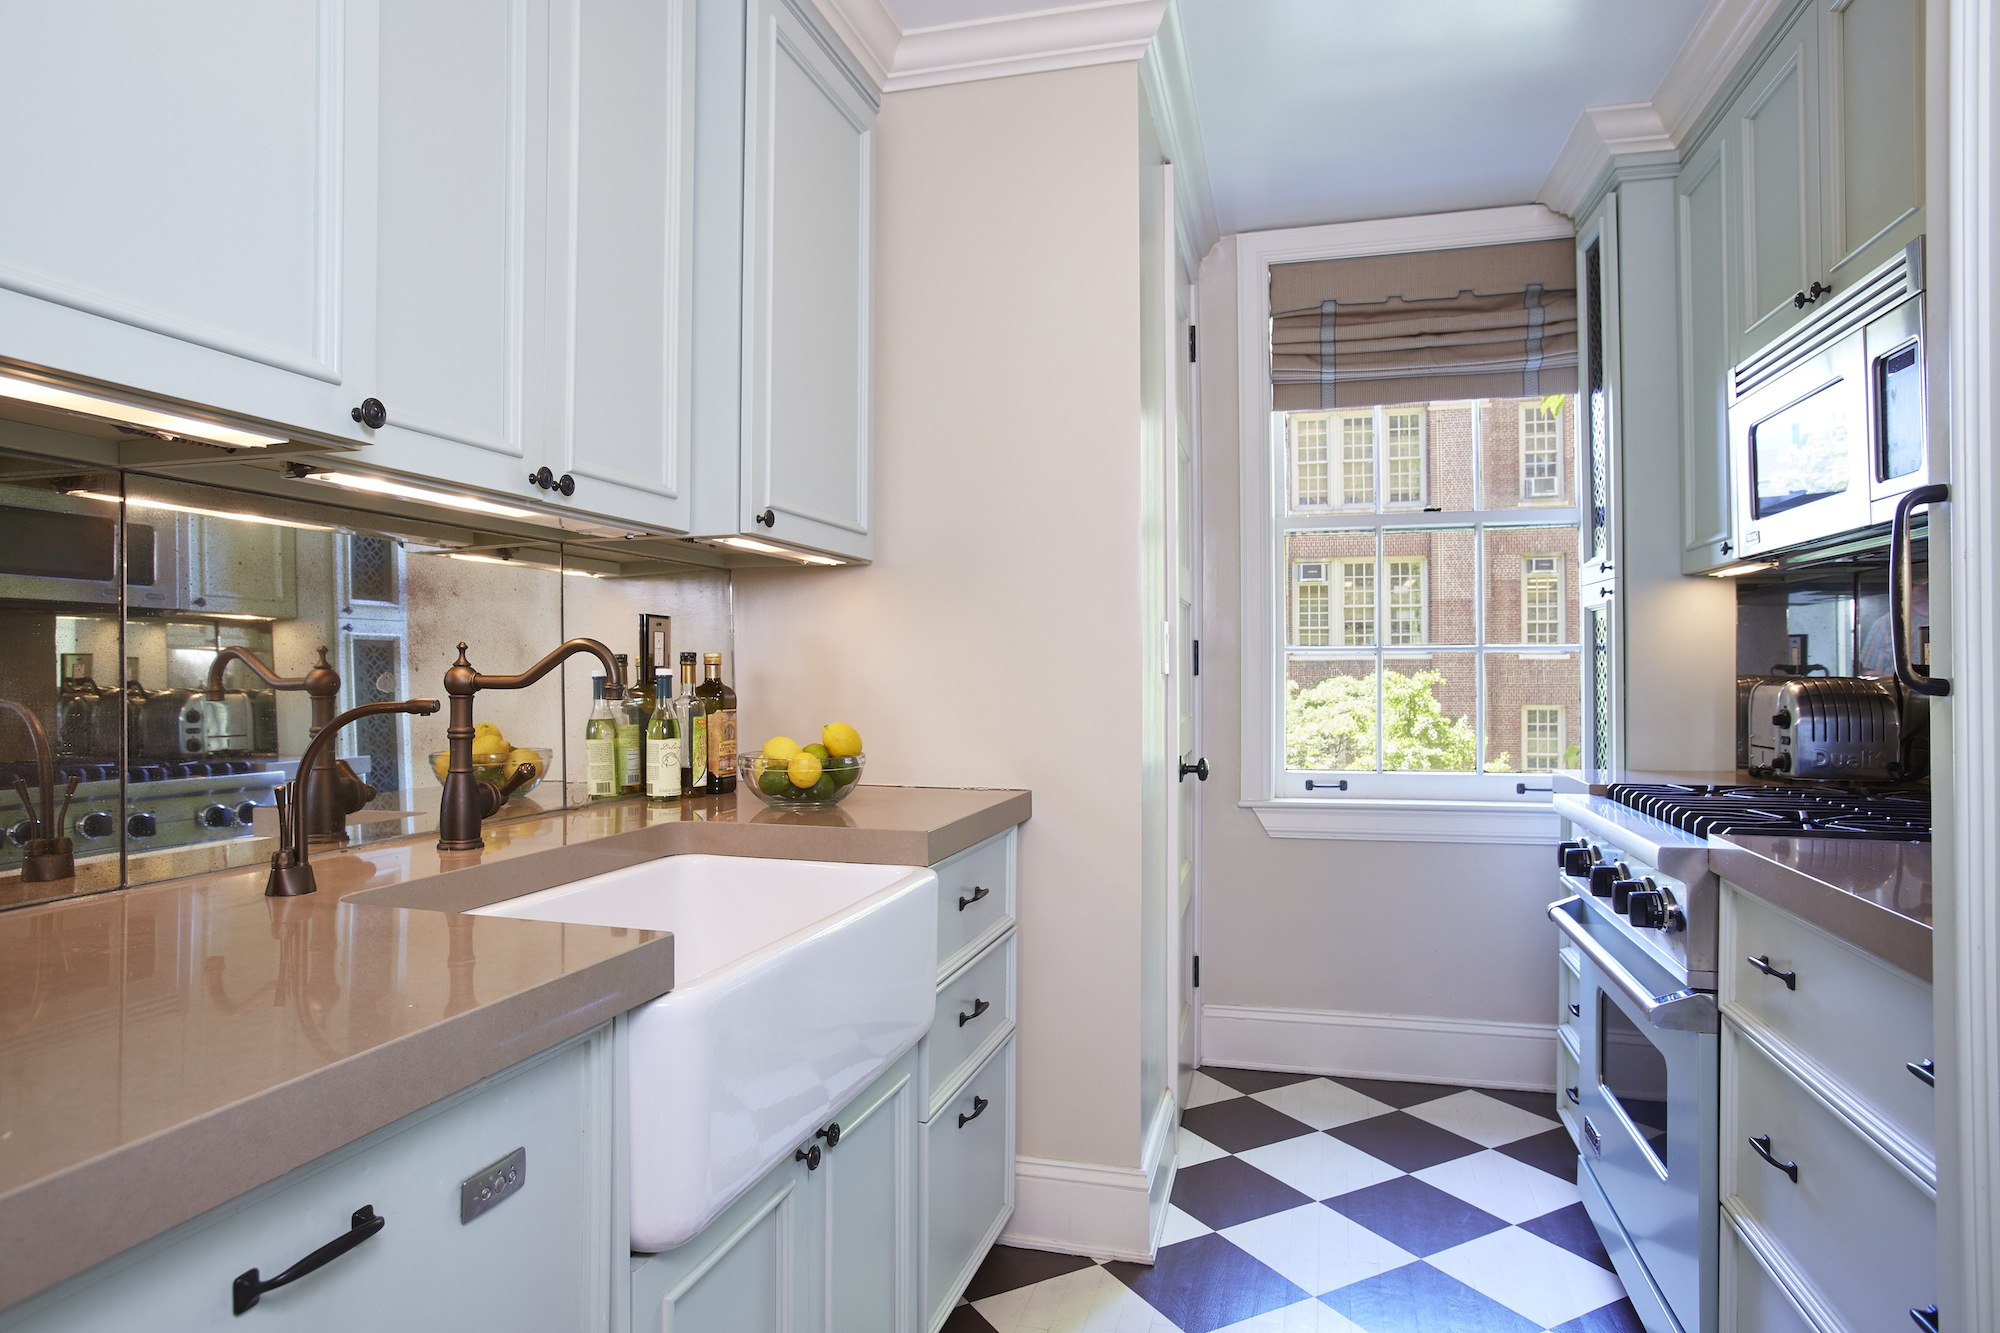 333 East 68th Street, co-op, upper east side, kitchen